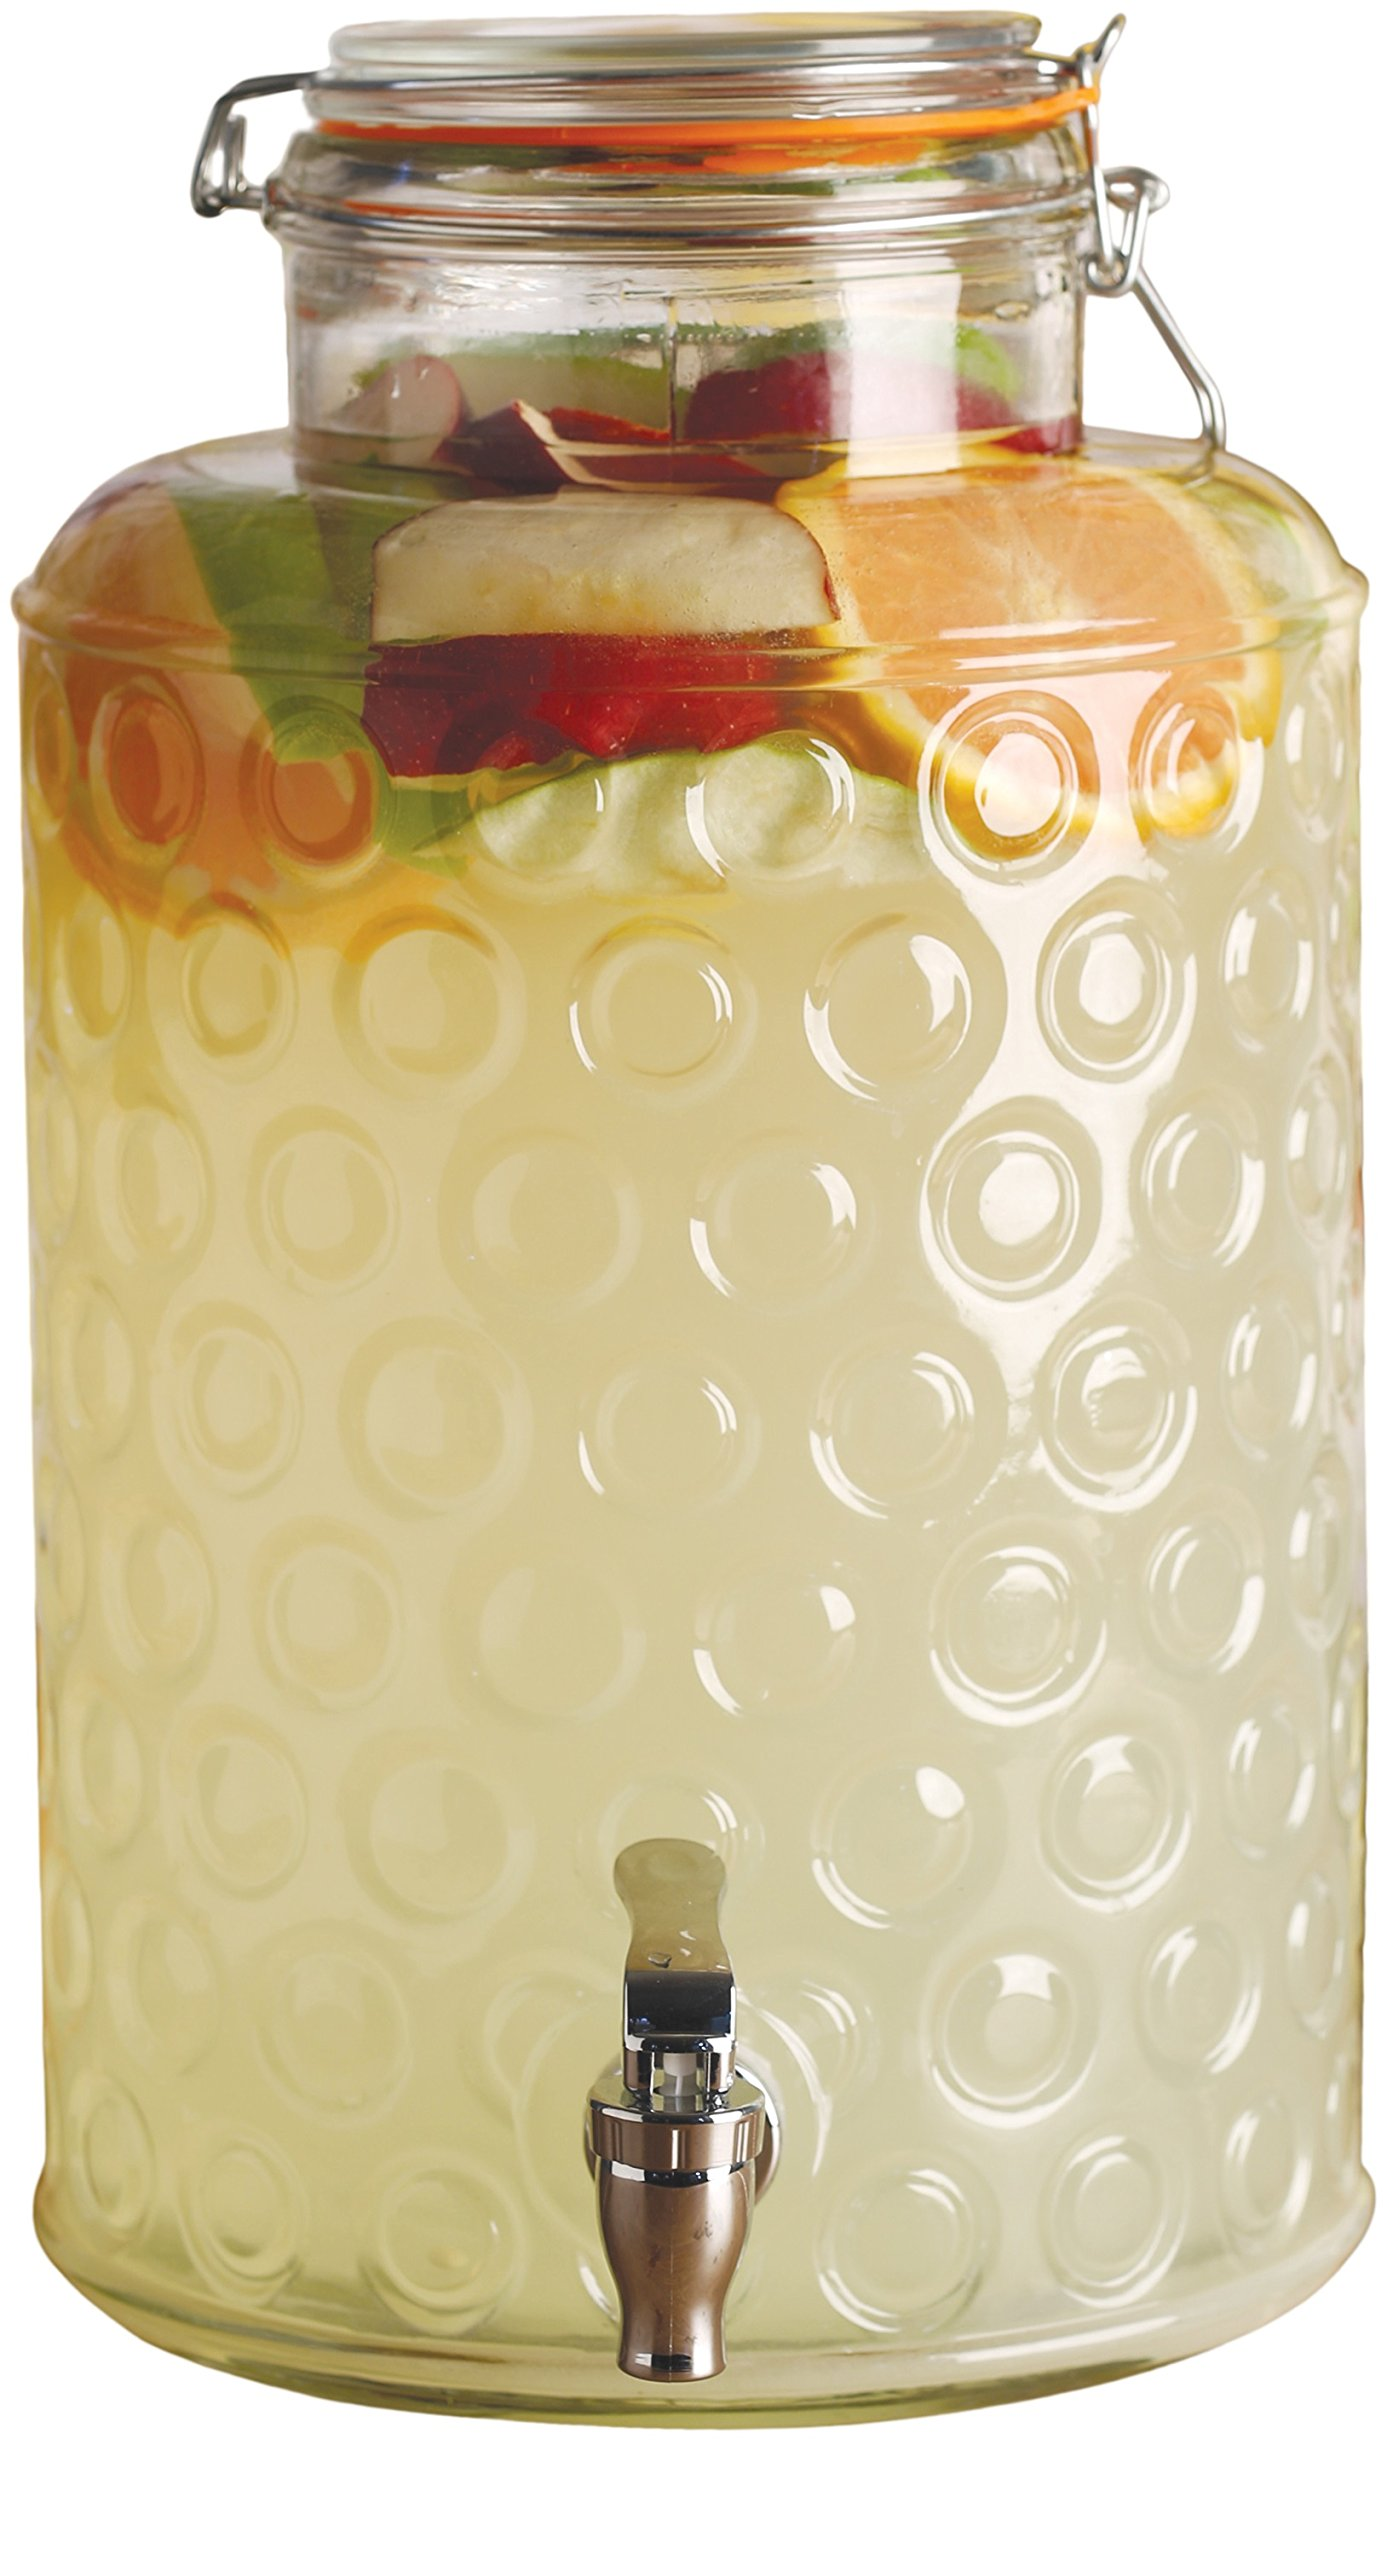 Circleware 69161 Circles Glass Beverage Drink Dispenser with Hermetic Locking Lid Glassware for Water, Iced Tea Kombucha, Punch and All Type of Cold, 2.4 Gallons